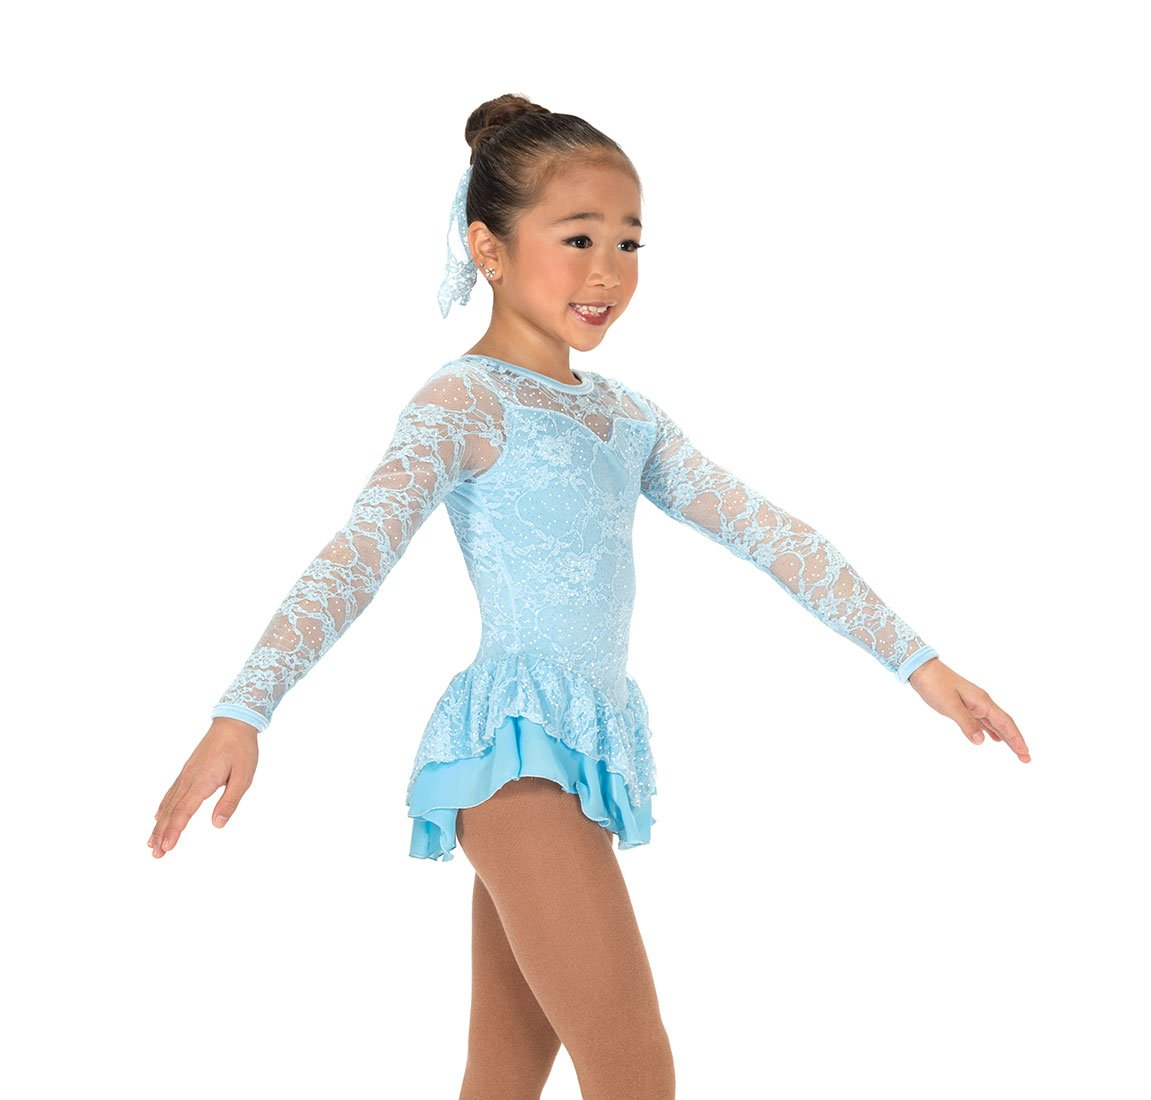 Jerry's Figure Skating Dress 175 - Lace Palace Pastel Blue (4-6) by Jerry's Skating World